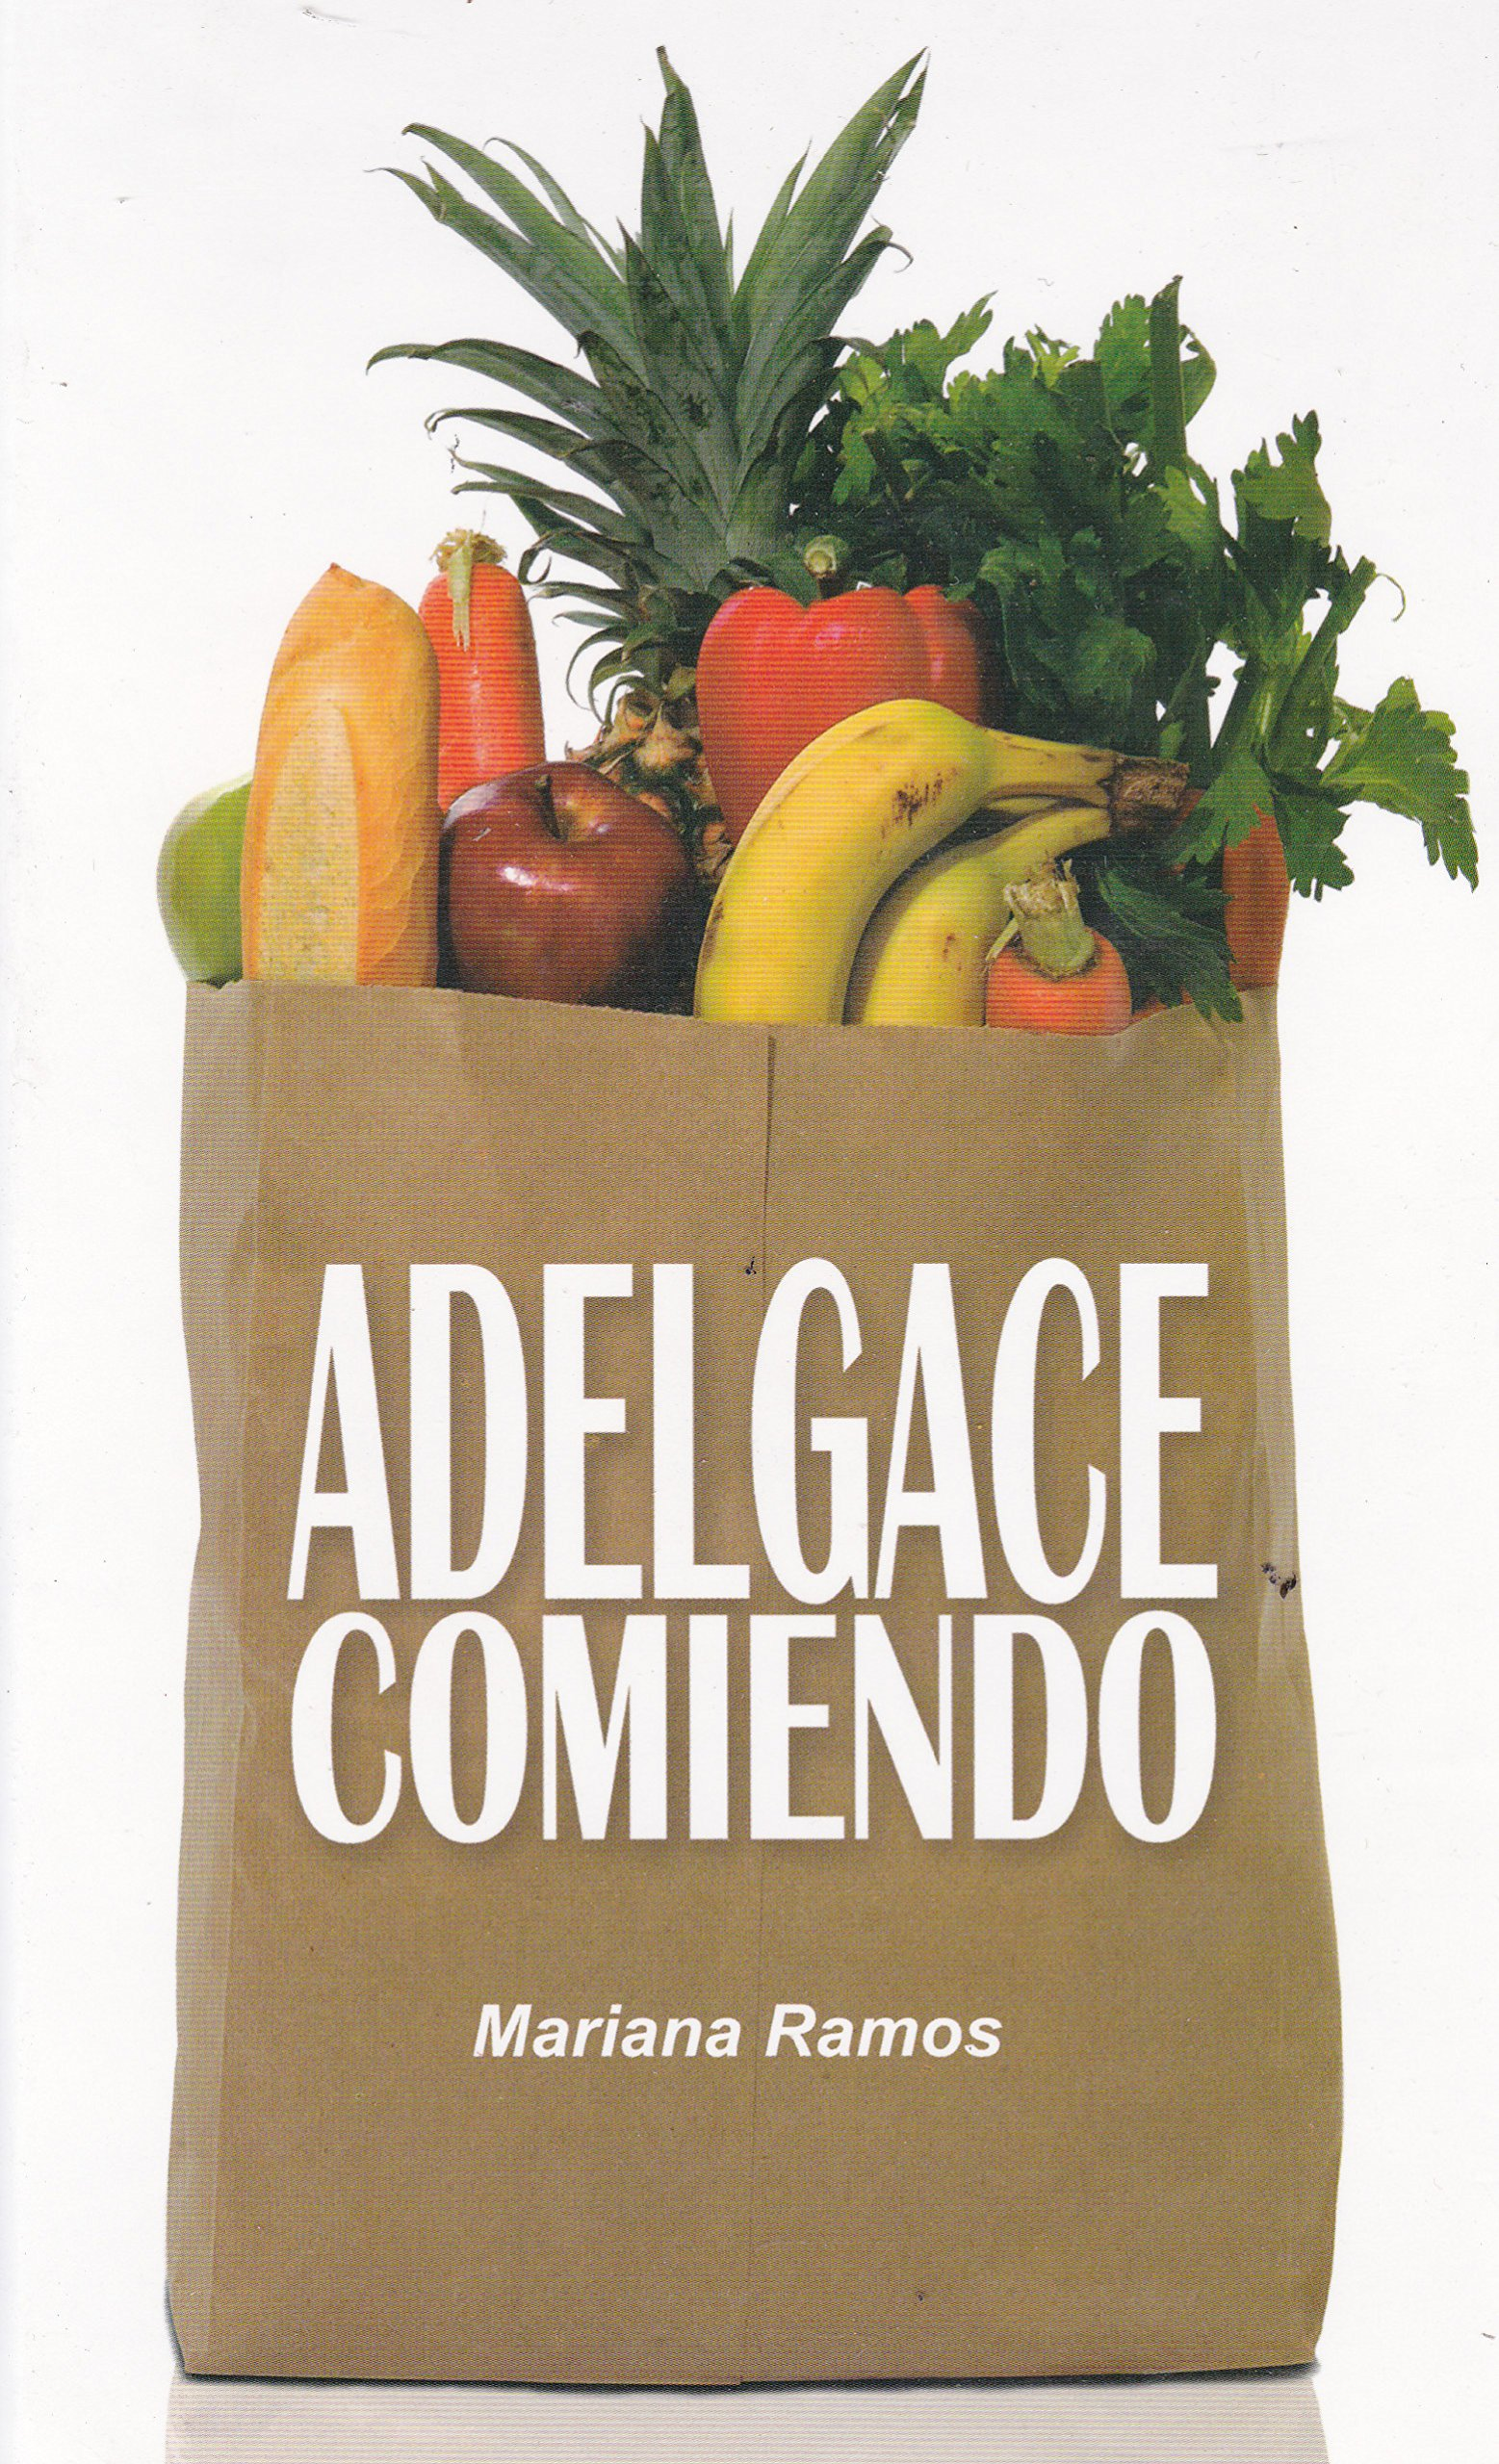 Adelgace Comiendo (Spanish Edition): Mariana Ramos: 9786071402936: Amazon.com: Books